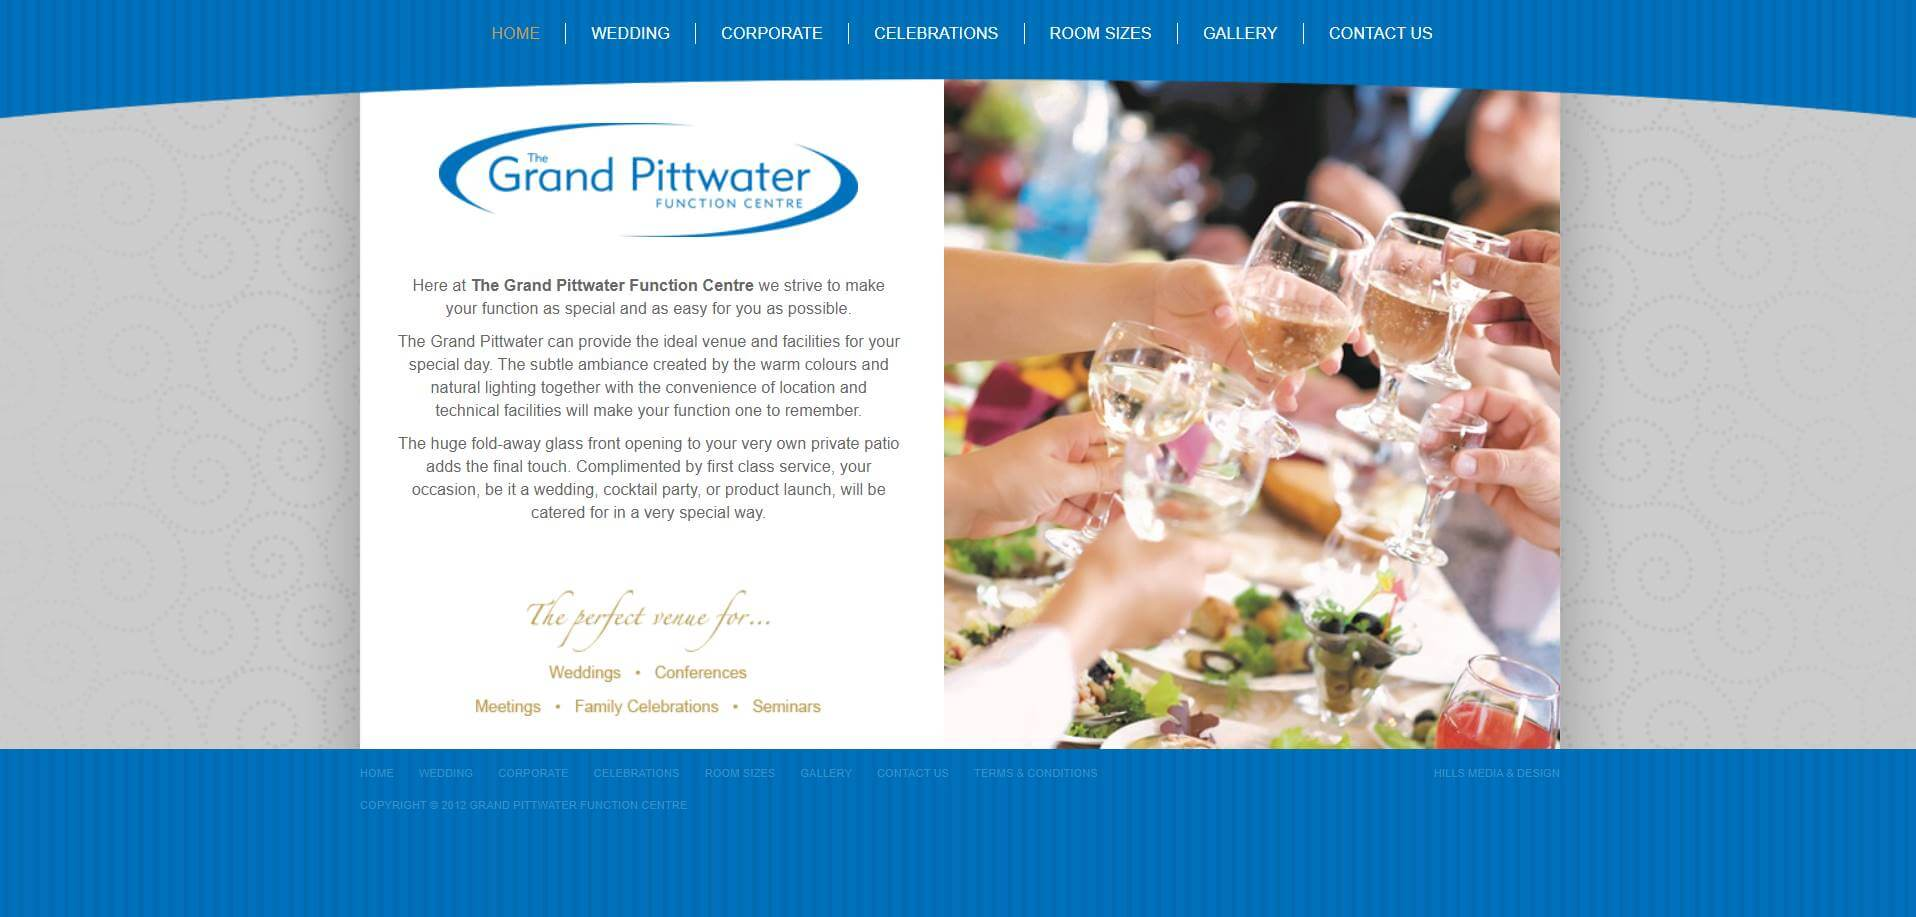 the grand pittwater function centre